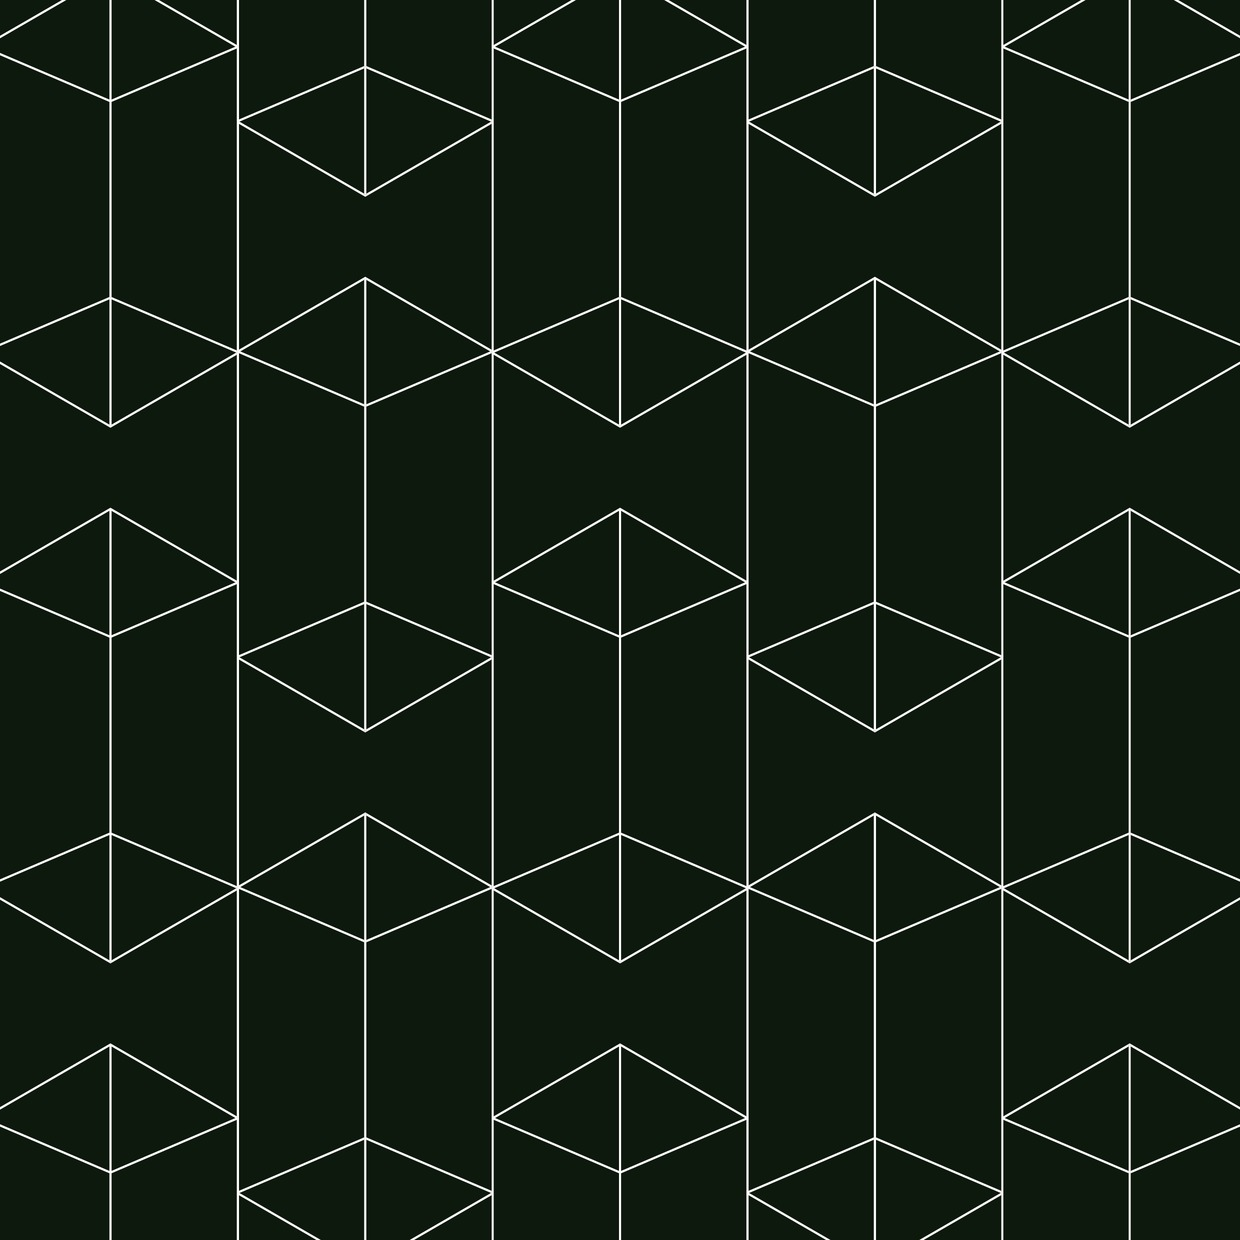 Stockunlimited geometric patterns background